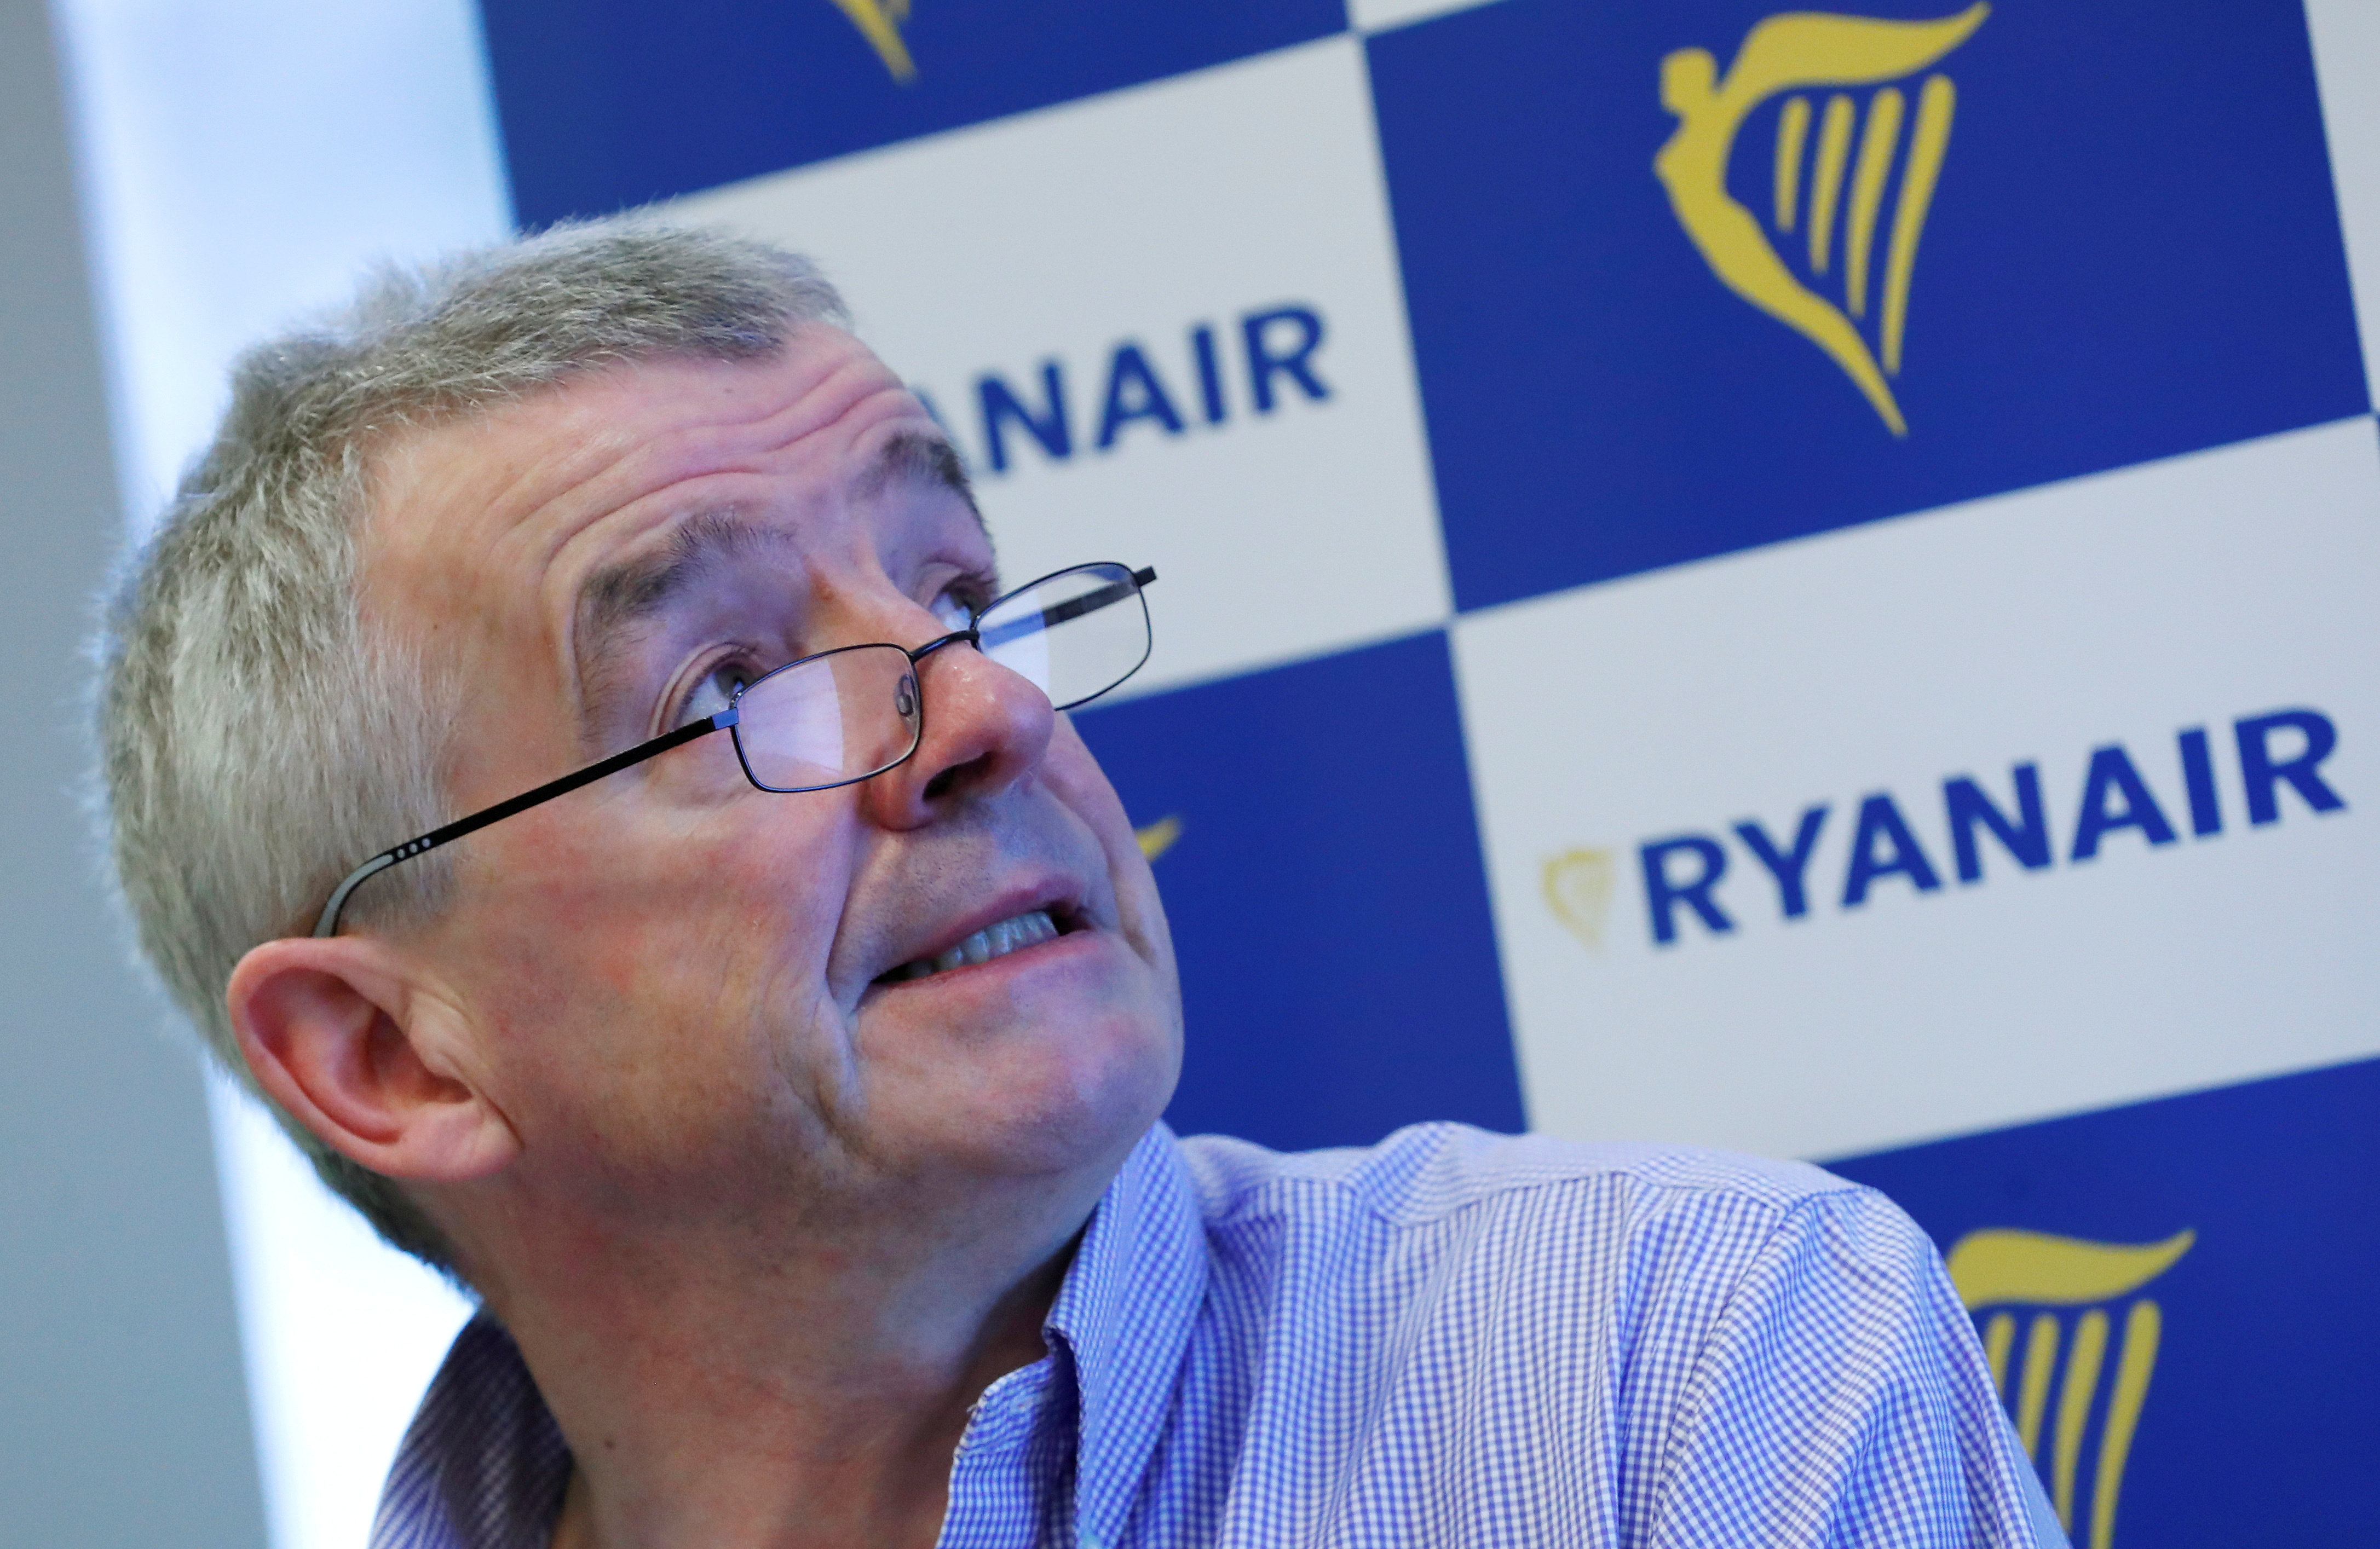 Ryanair CEO Michael O'Leary holds a news conference in Brussels, Belgium, March 6, 2018. REUTERS/Yves Herman/File Photo